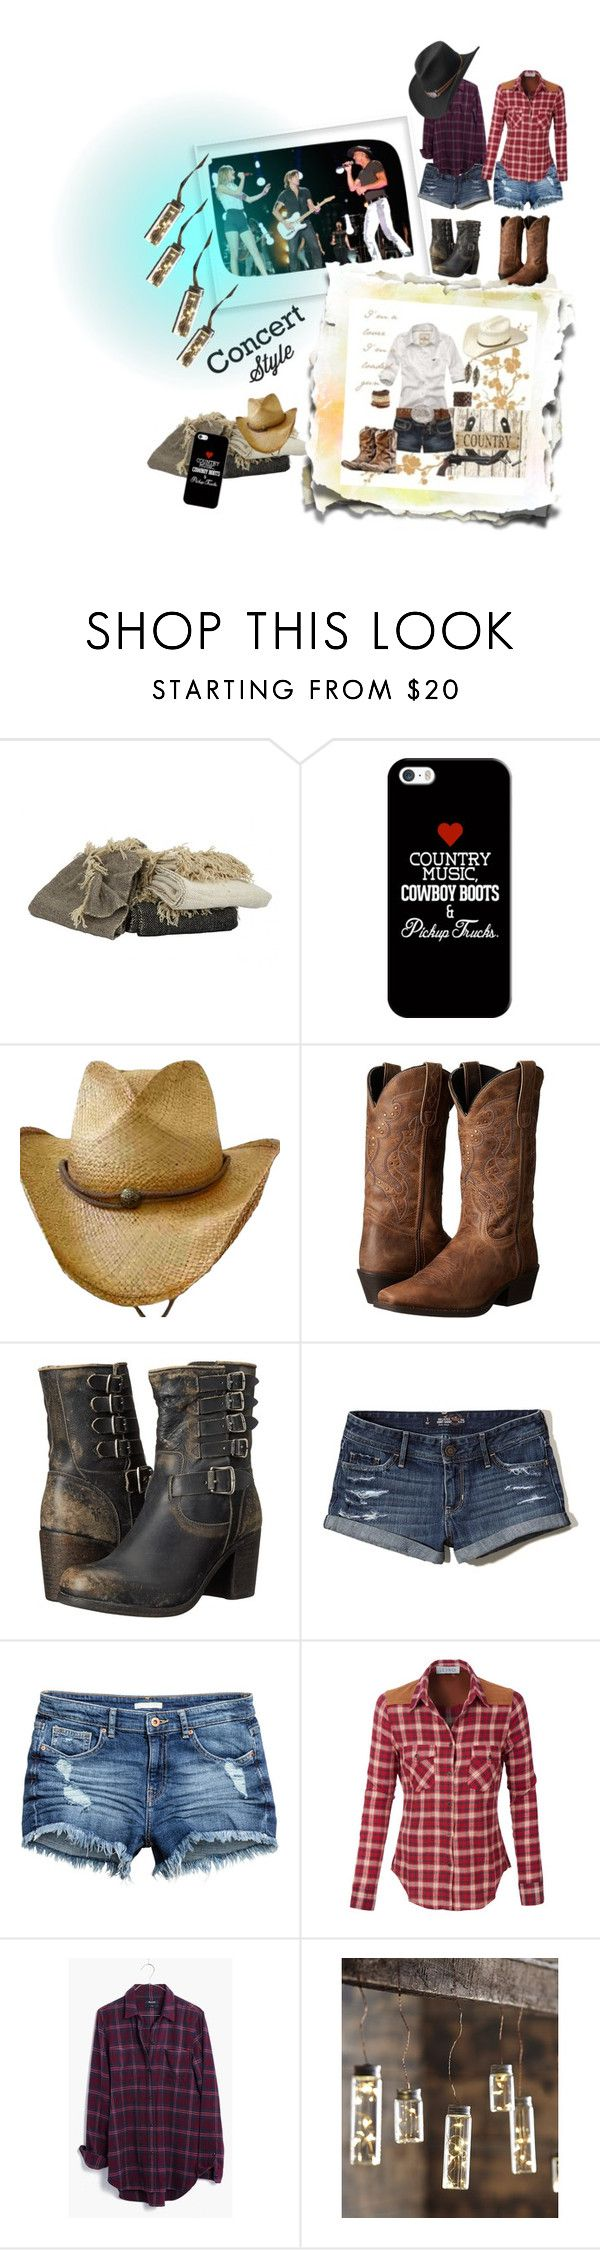 """""""Concert style"""" by maryann-bunt-deile ❤ liked on Polyvore featuring Jayson Home, Casetify, Laredo, Frye, Hollister Co., LE3NO, Madewell, Roost and Master Hatters of Texas"""